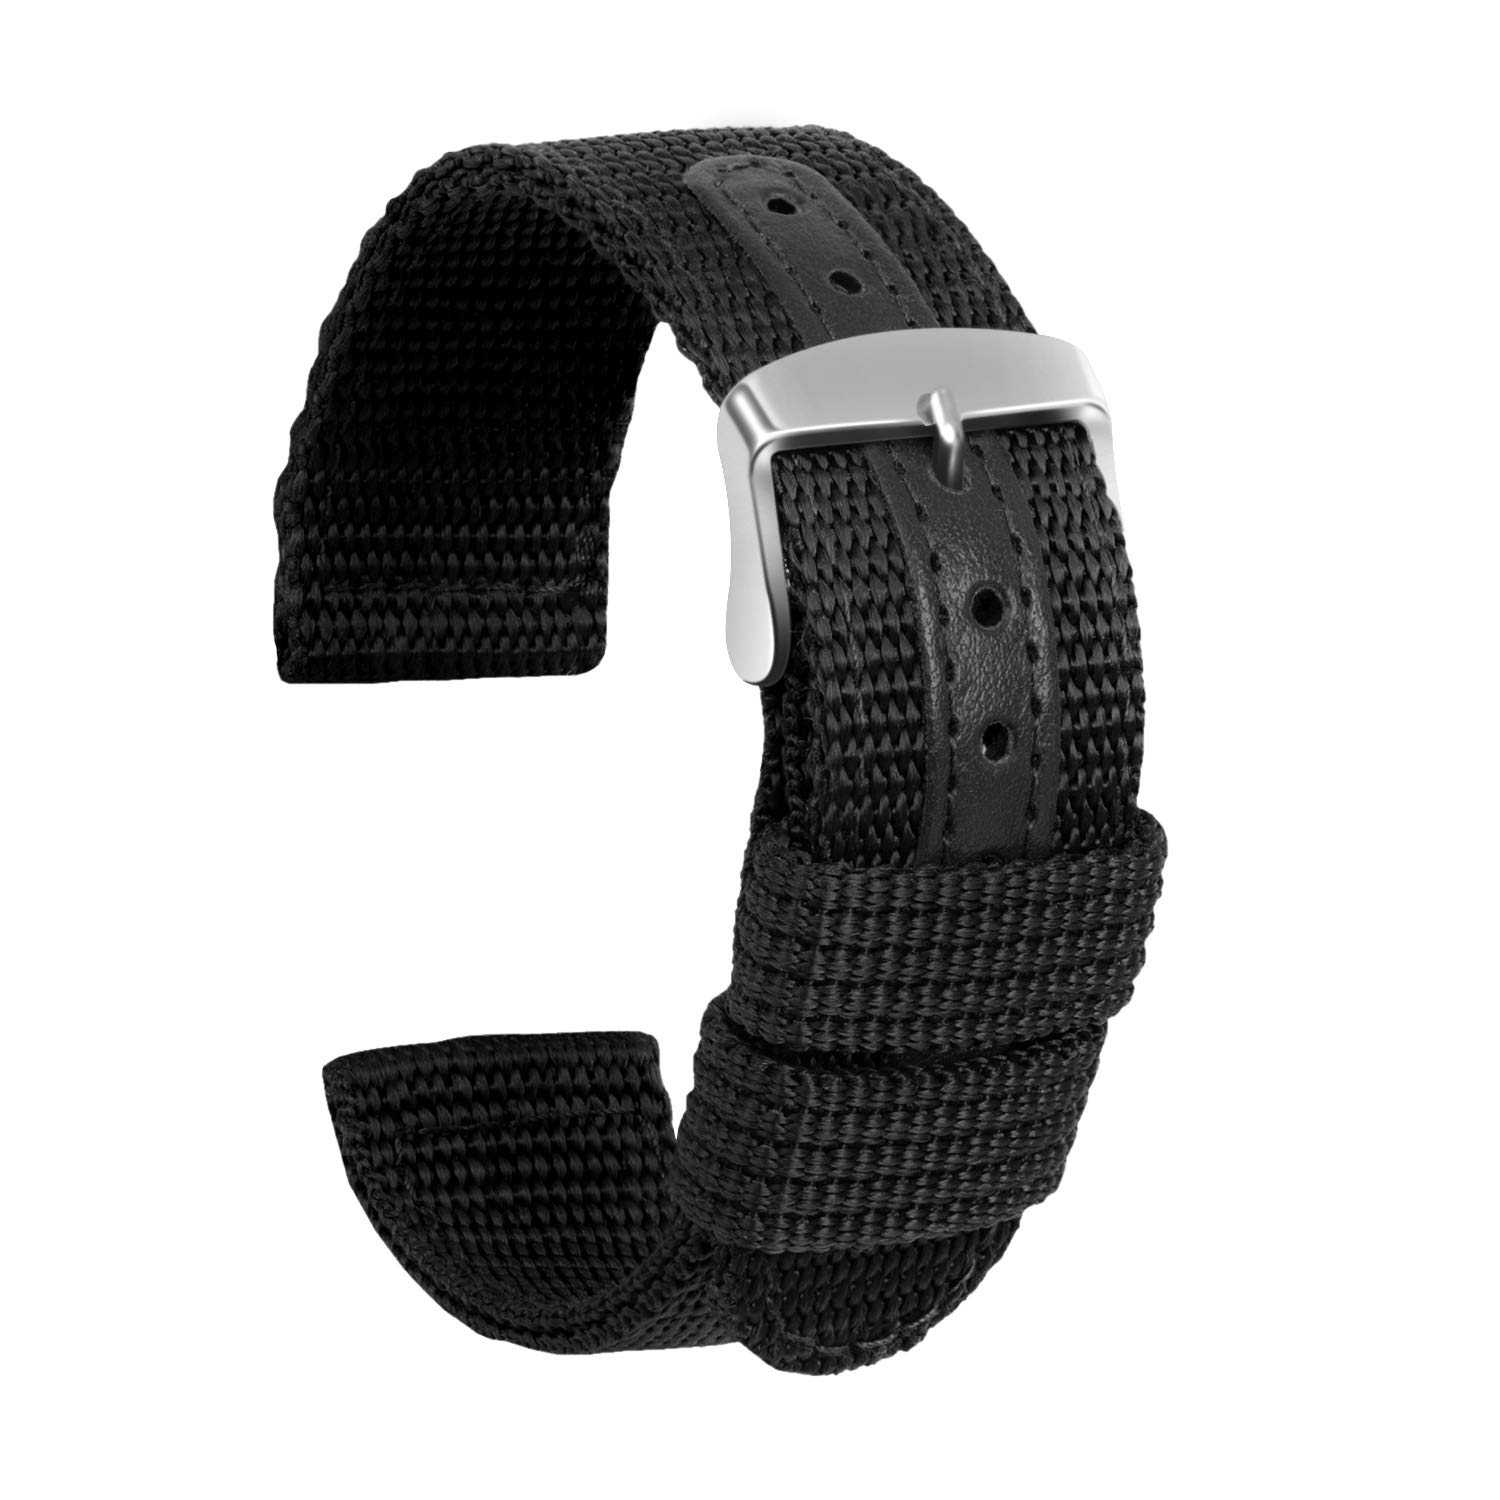 Watches Accessories Nylon Leather Watch Band For DW Watches Strap 18mm 20mm 22mm 24mm Width Watch Replacement Band